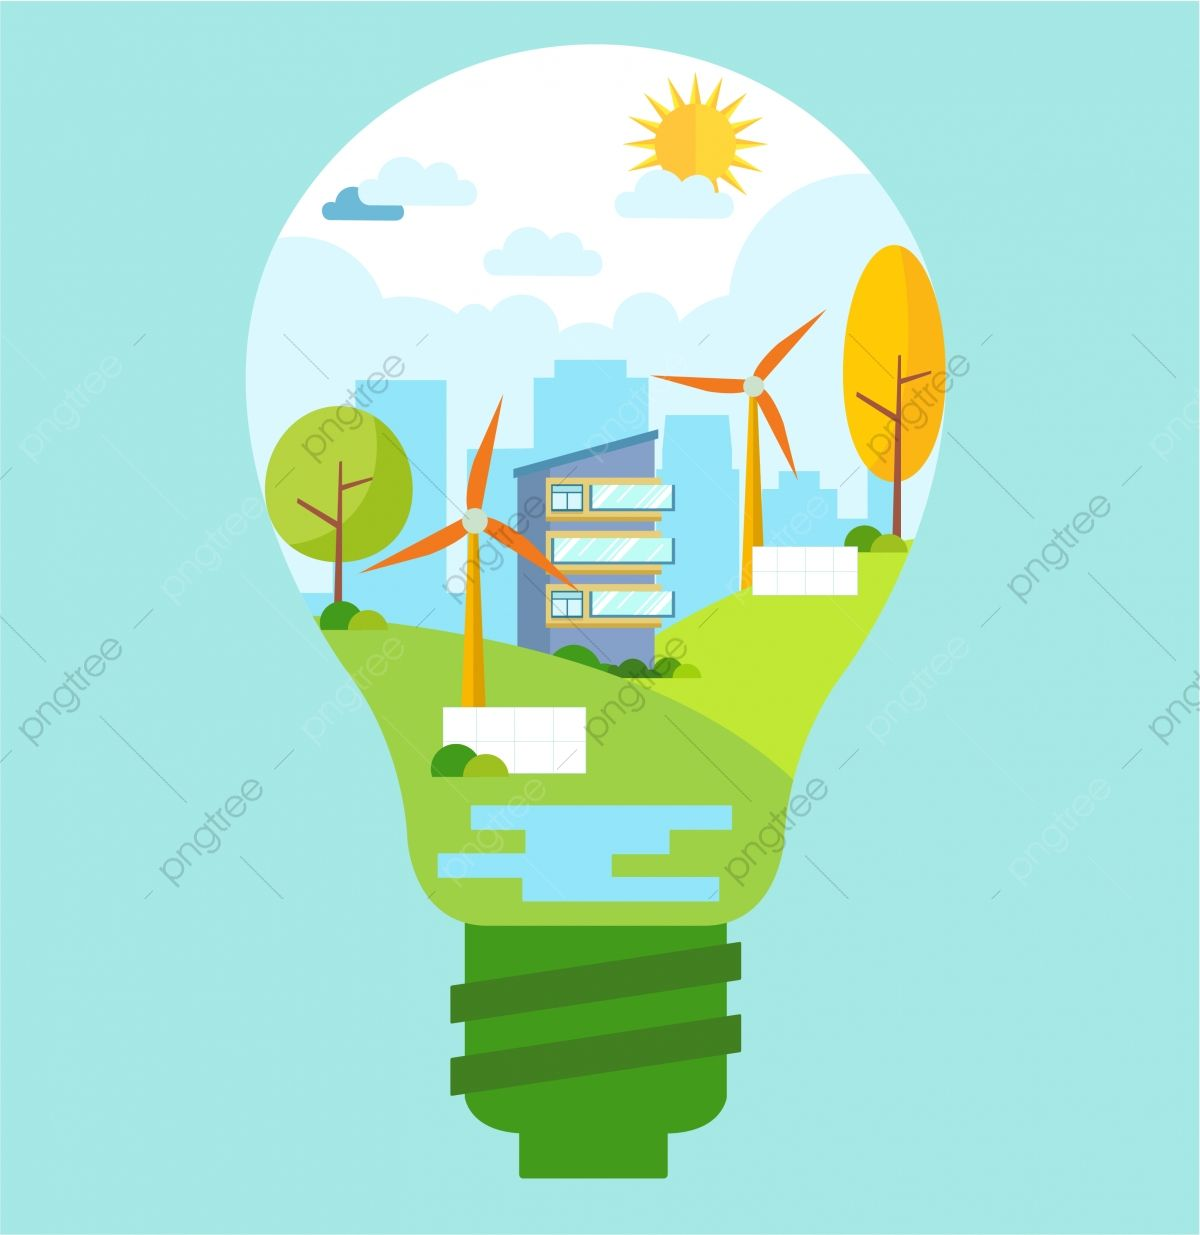 Energy Eco City Png And Vector With Transparent Background For Free Download Energy Logo Web Design Logo Save Energy Poster